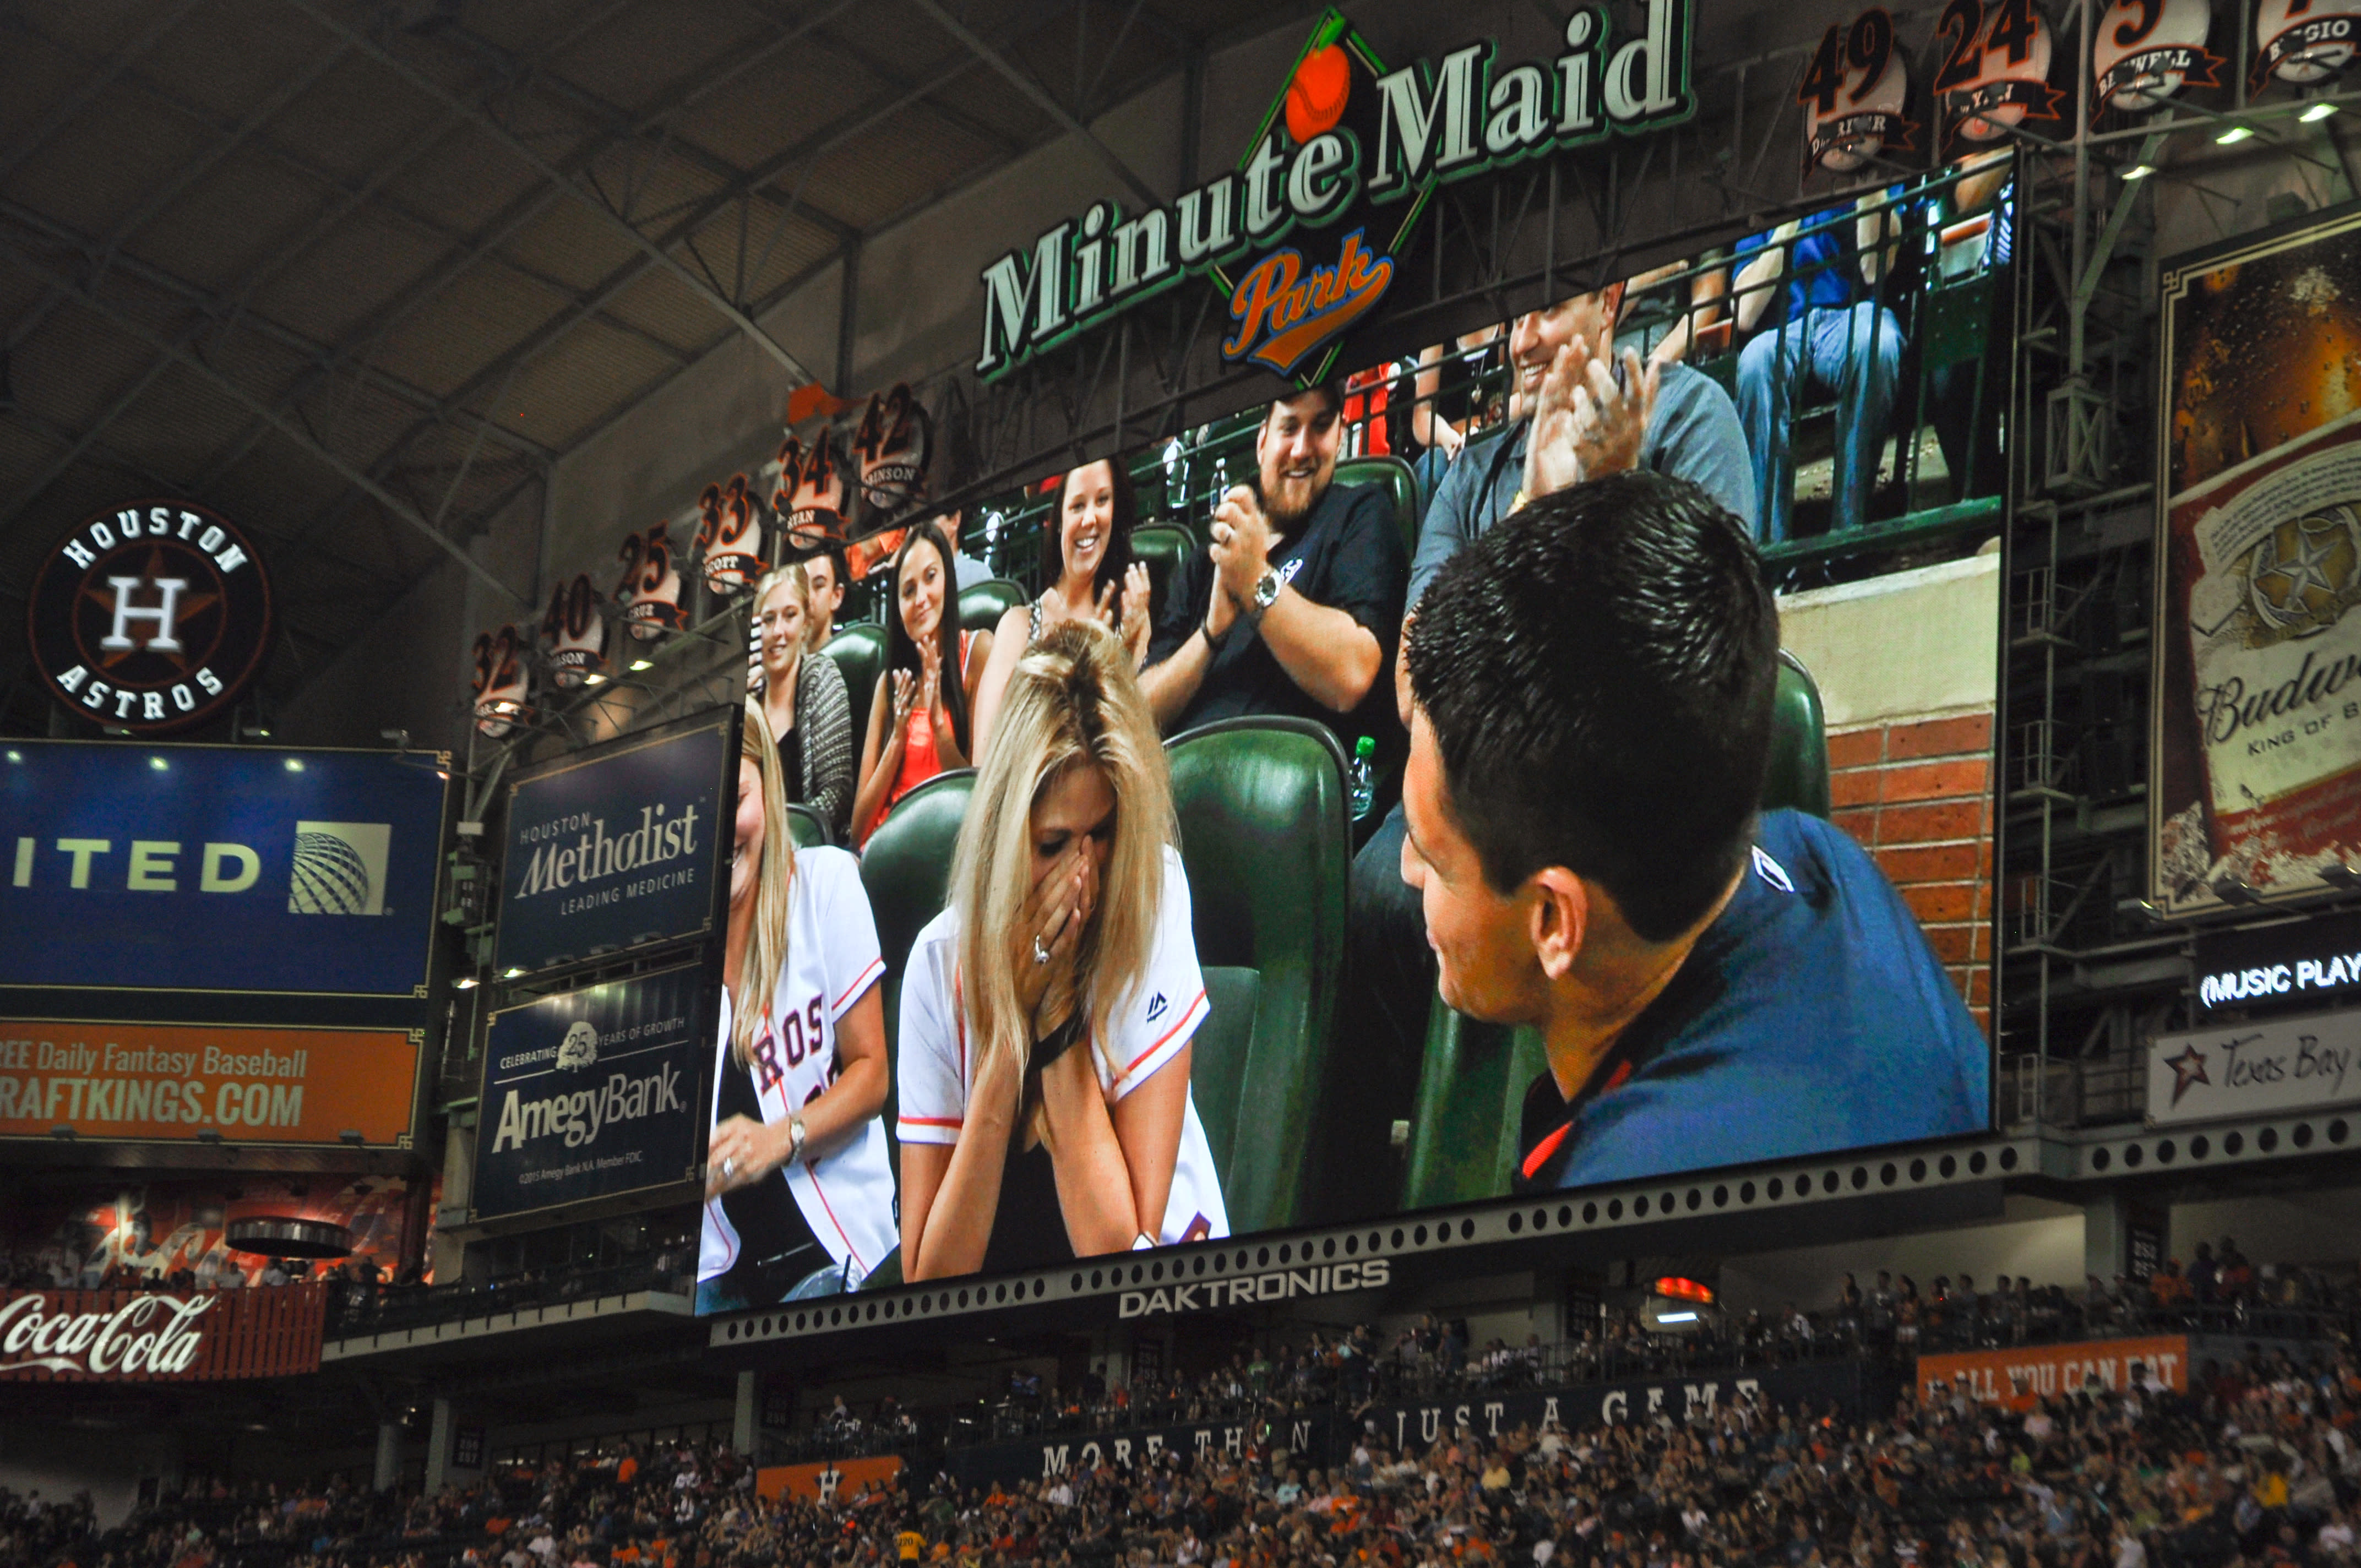 Marriage Proposal on Minute Maid Park Big Screen